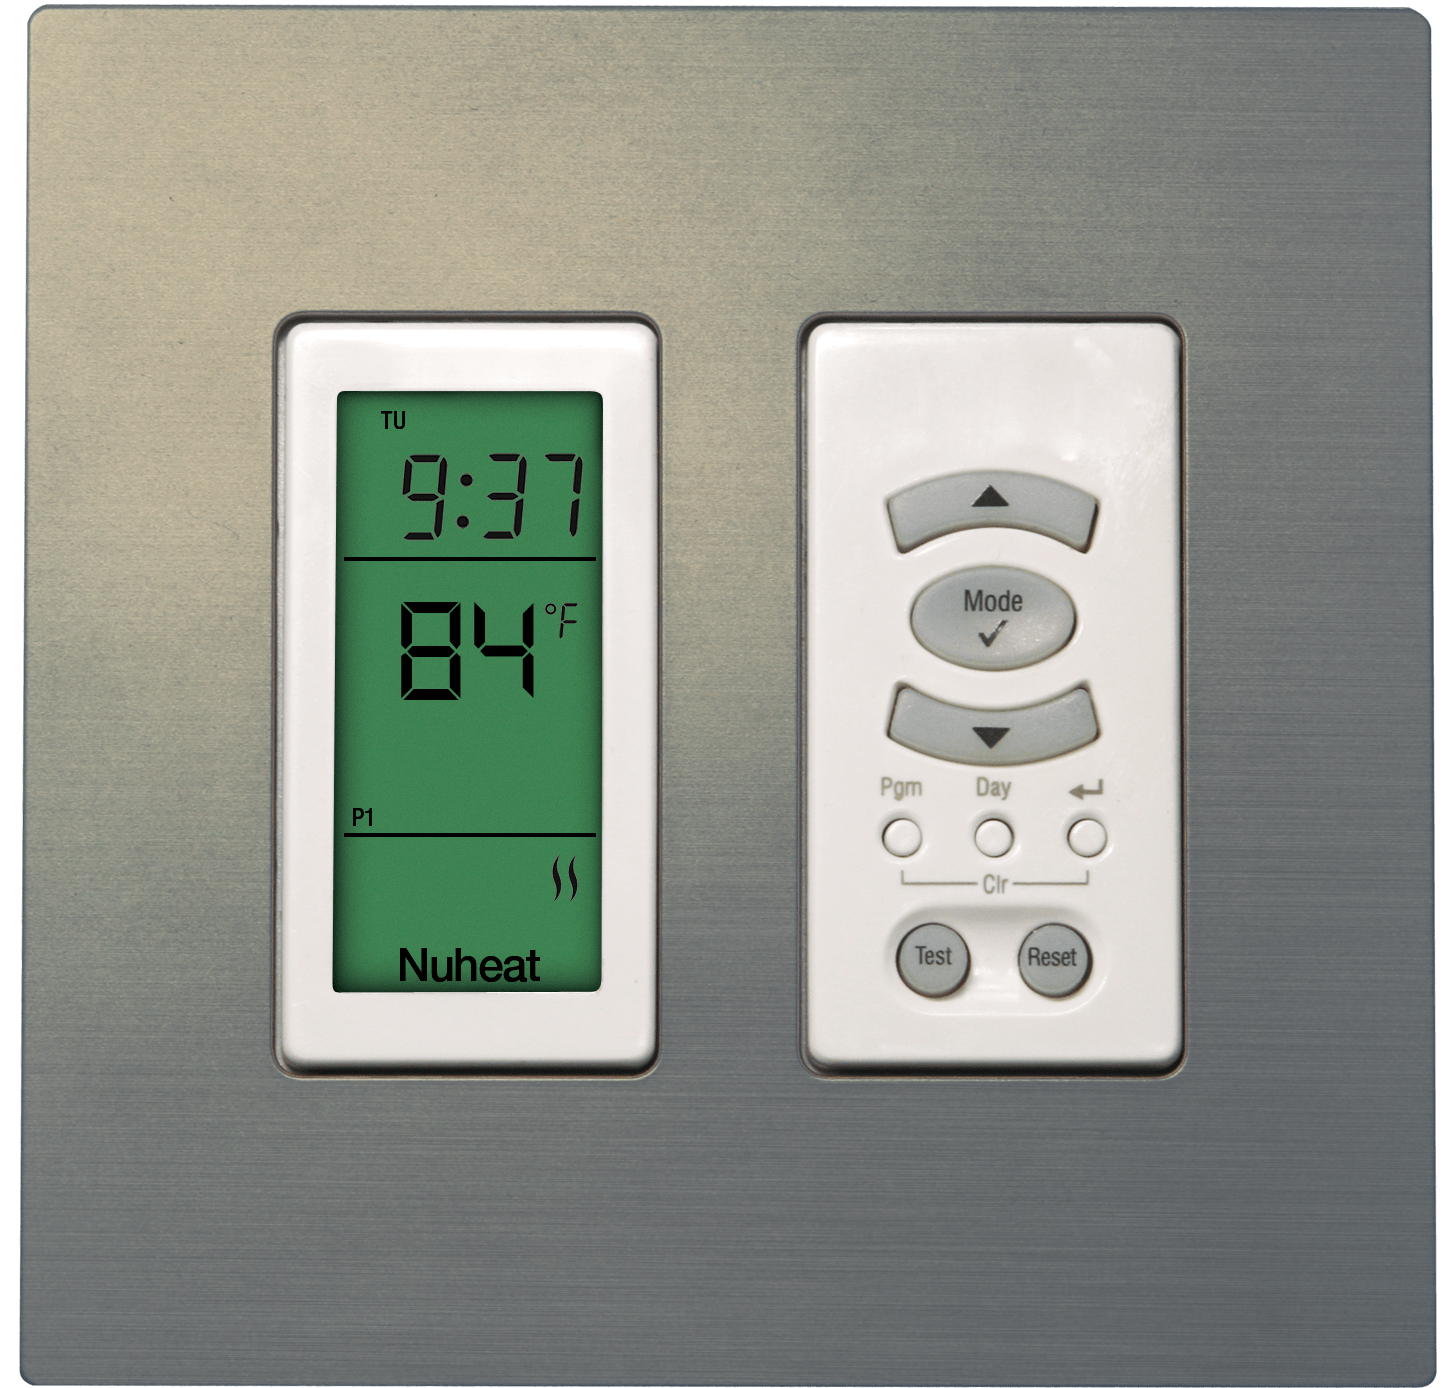 harmony w stealfaceplate 2015?resize=665%2C637 white rodgers thermostat 1f80 51 wiring diagram white rodgers  at reclaimingppi.co